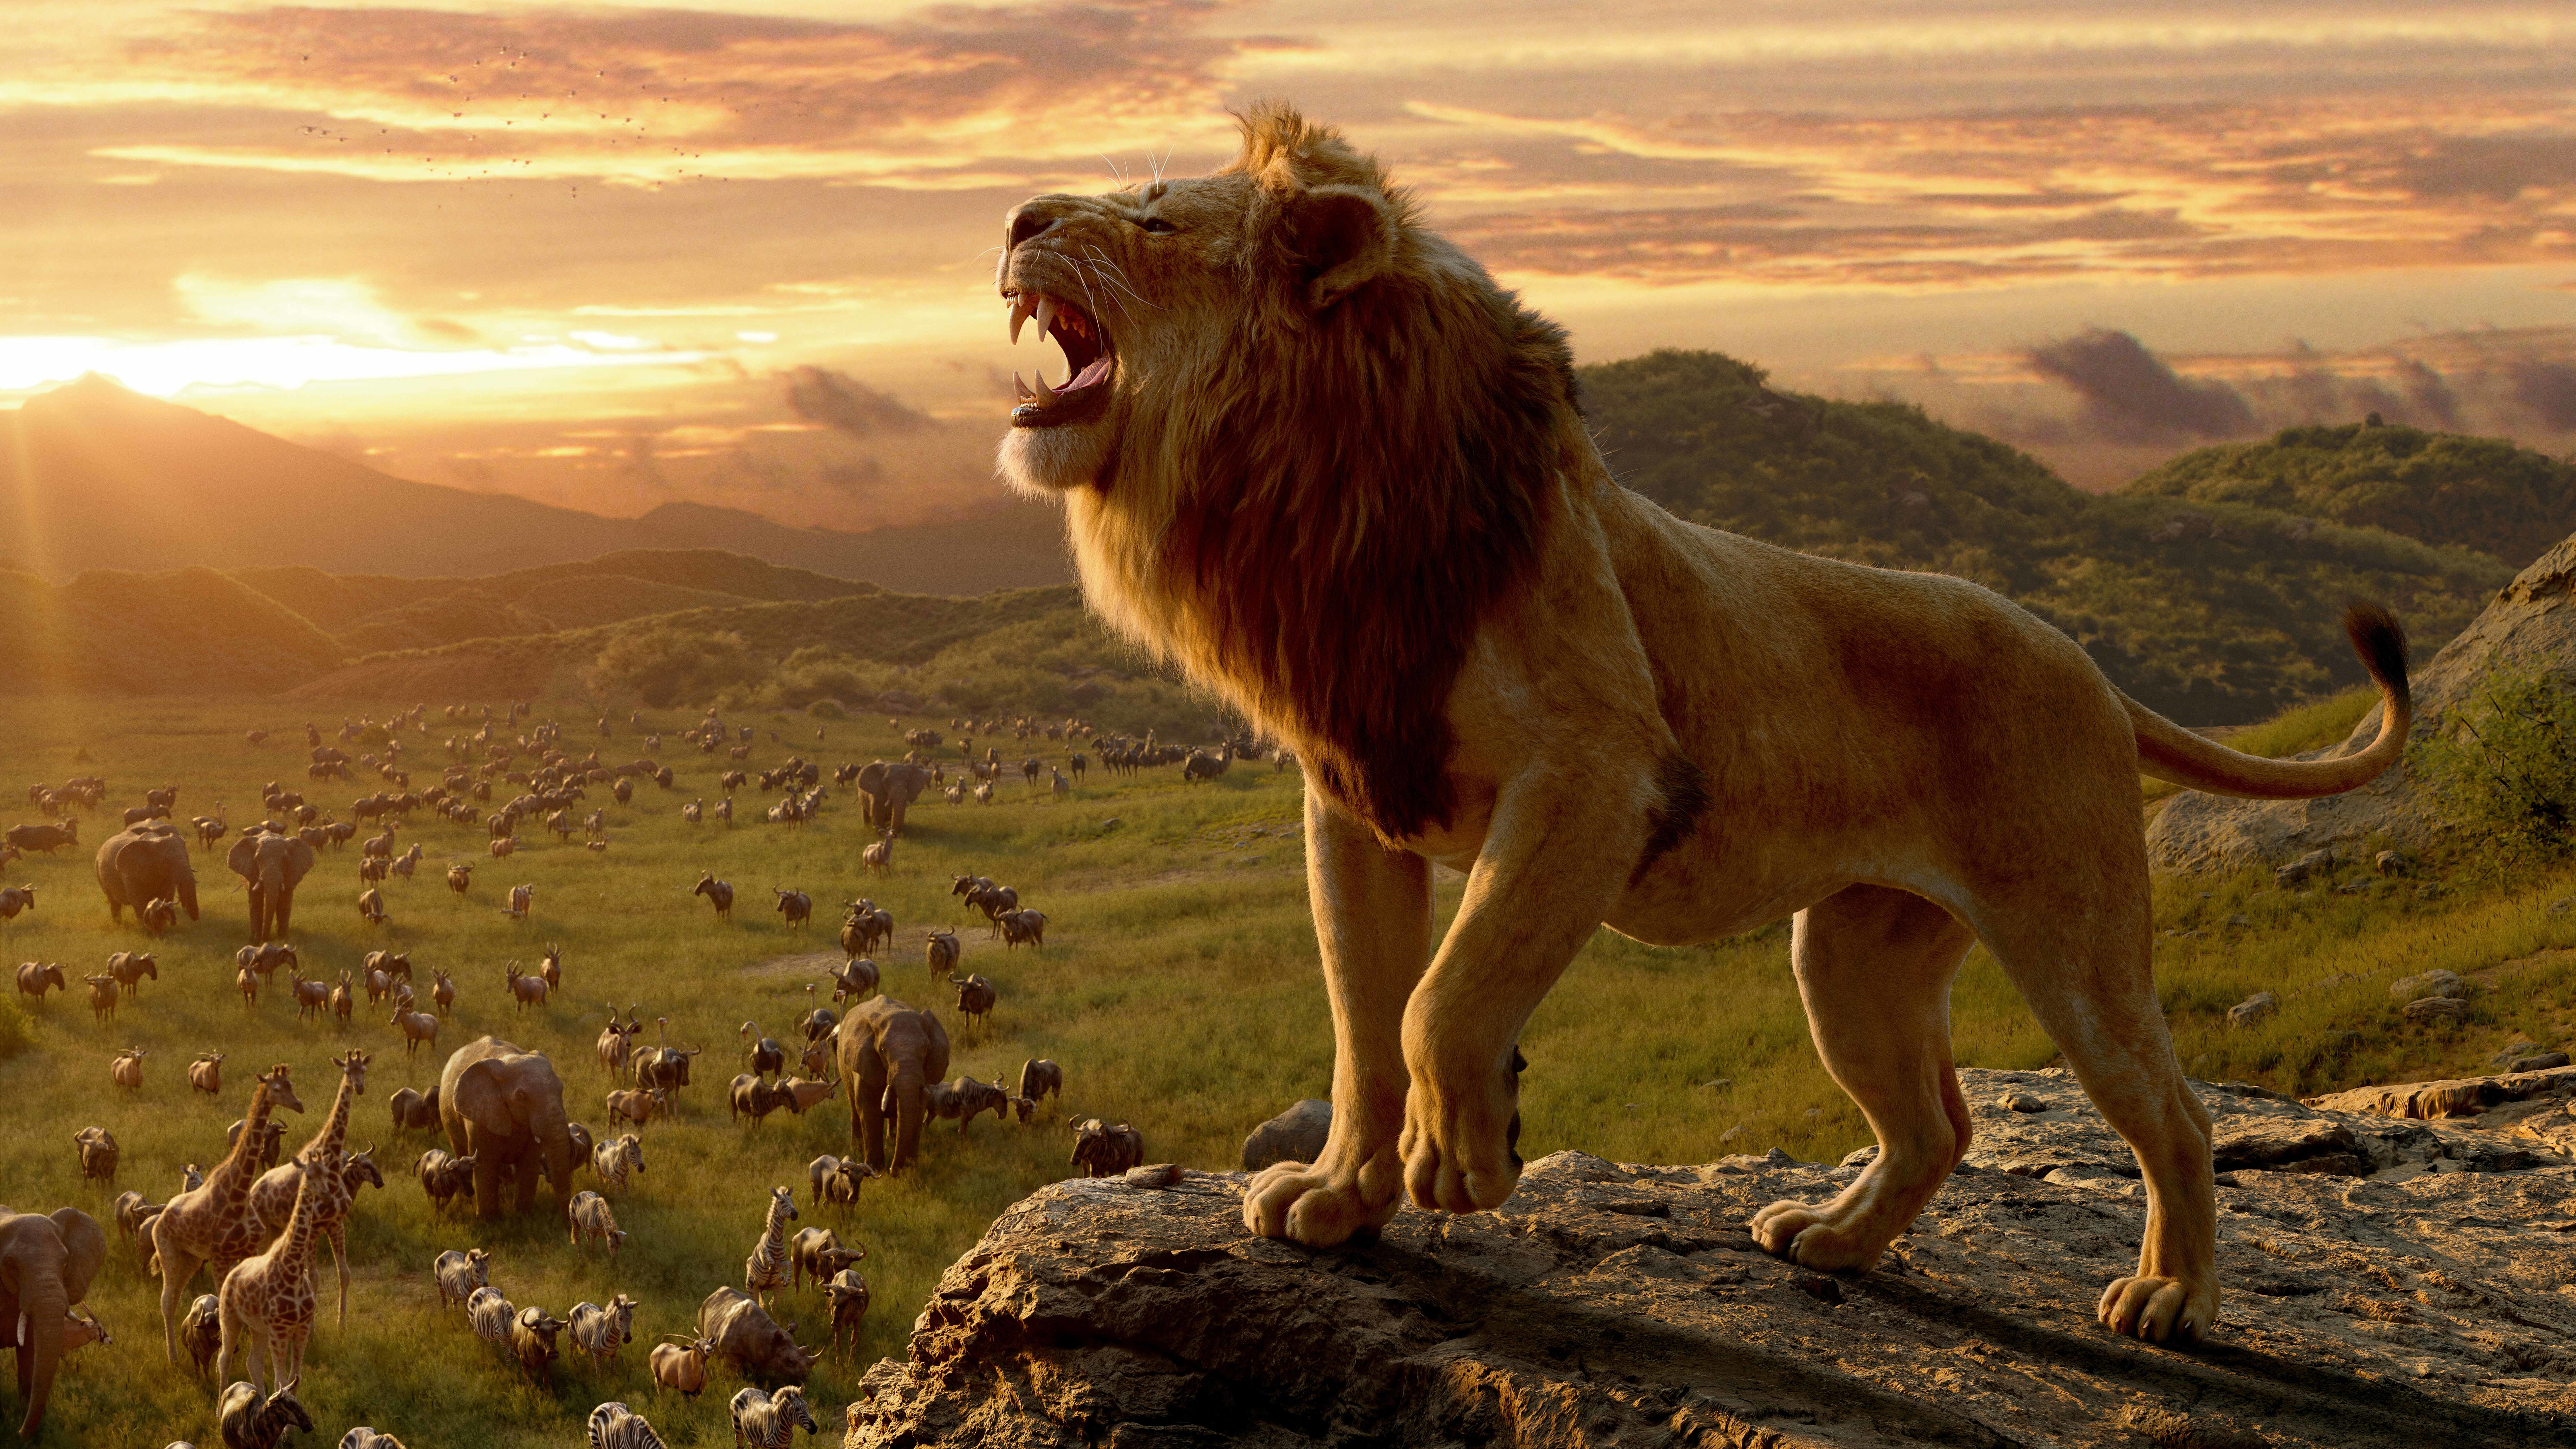 1080x2340 Lion From The Lion King 1080x2340 Resolution Wallpaper